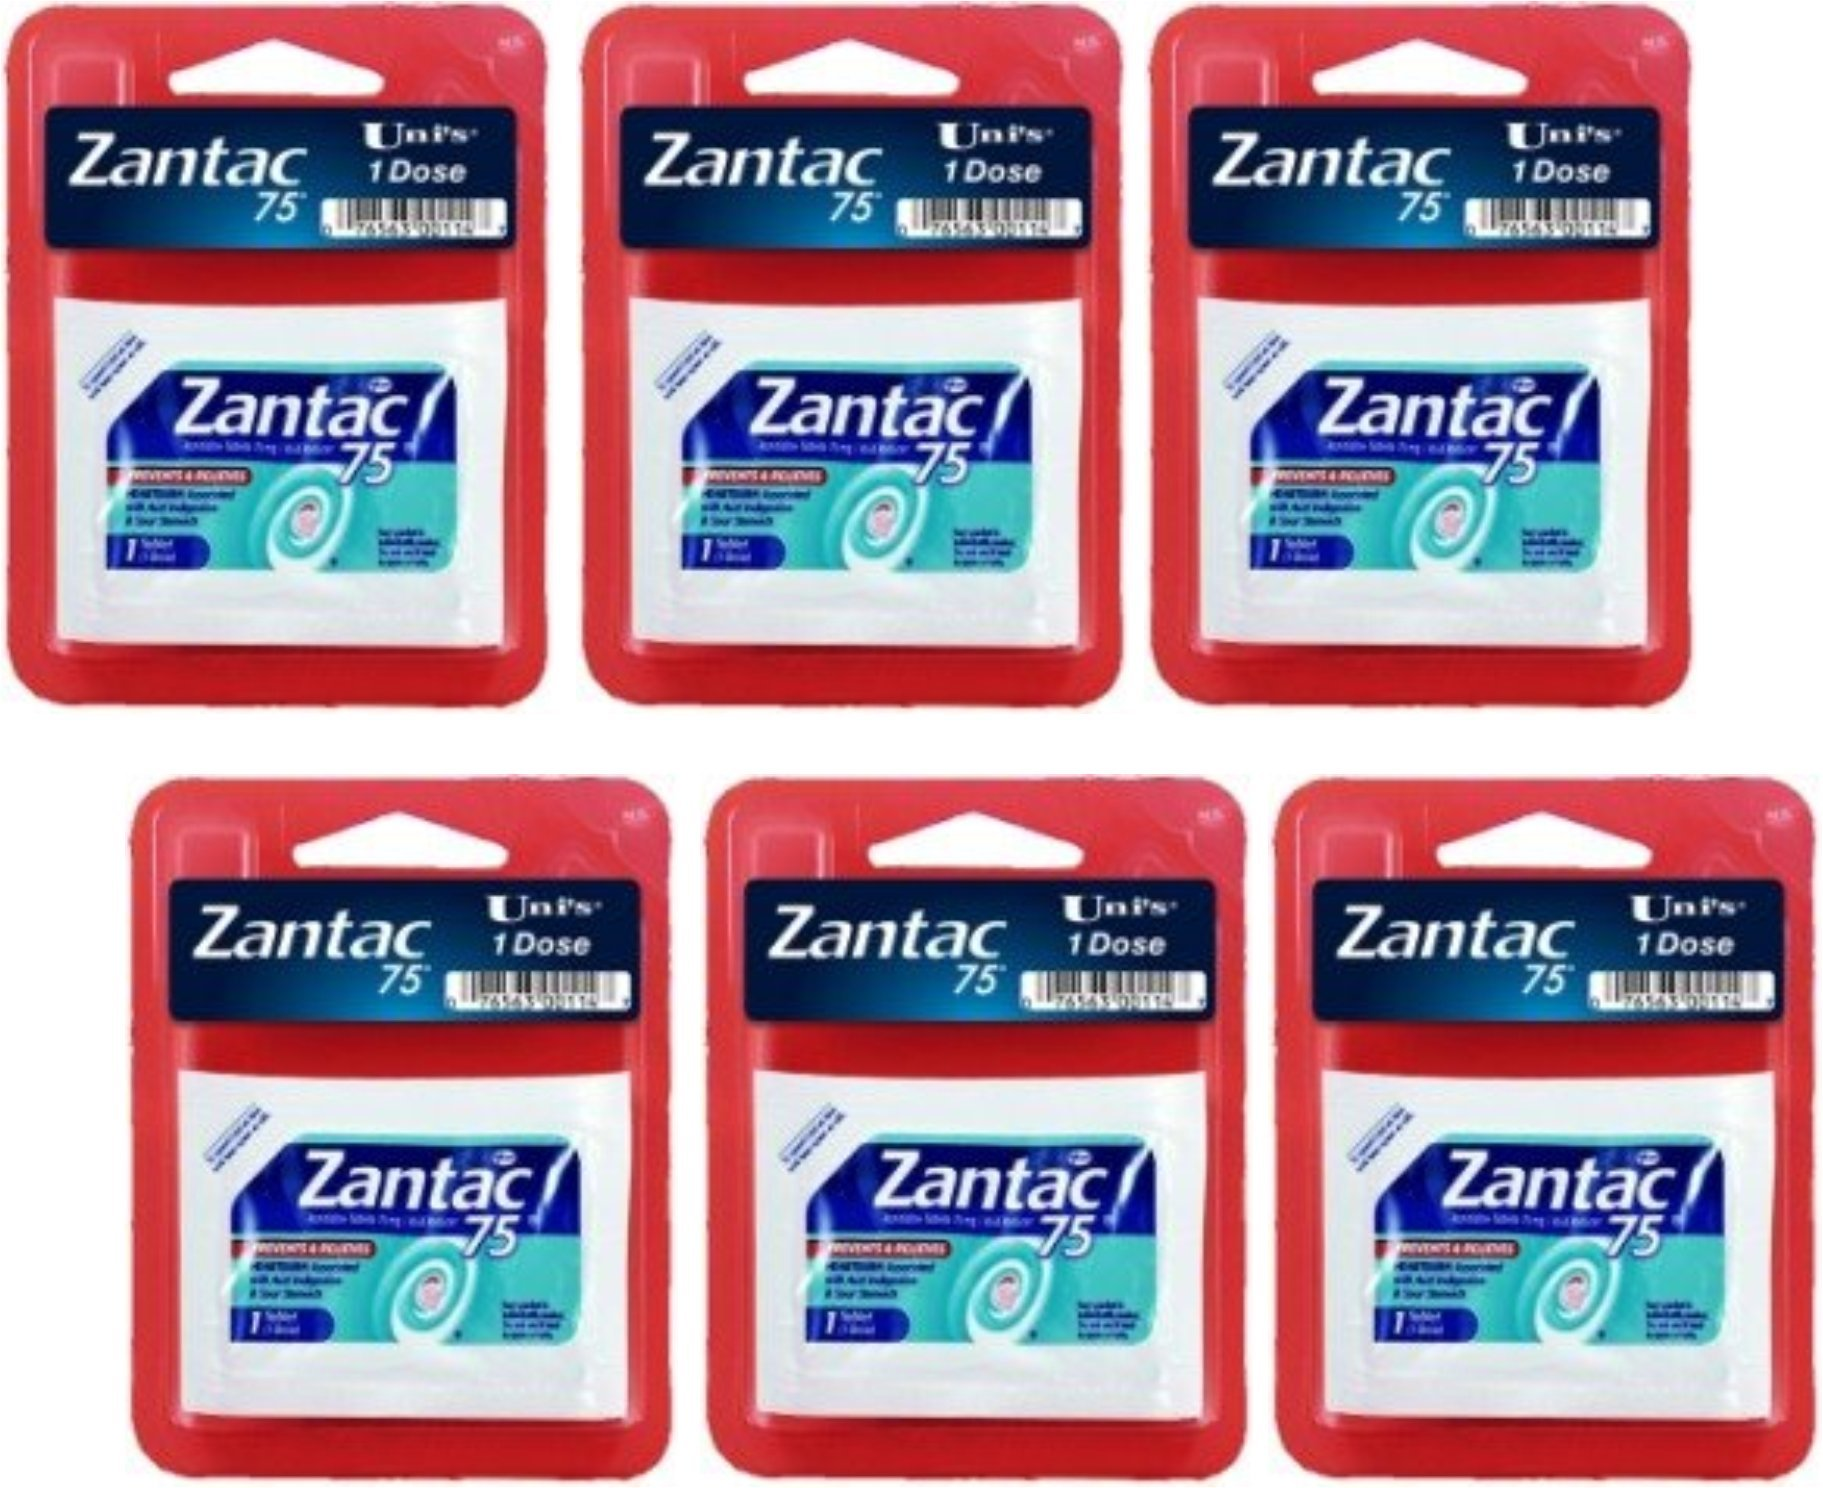 Zantac 6 PK (2 Caplets Per Sleeve) Perfect for Travel and On-The-Go! Individual Doses to Help Relieve Heartburn Fast!